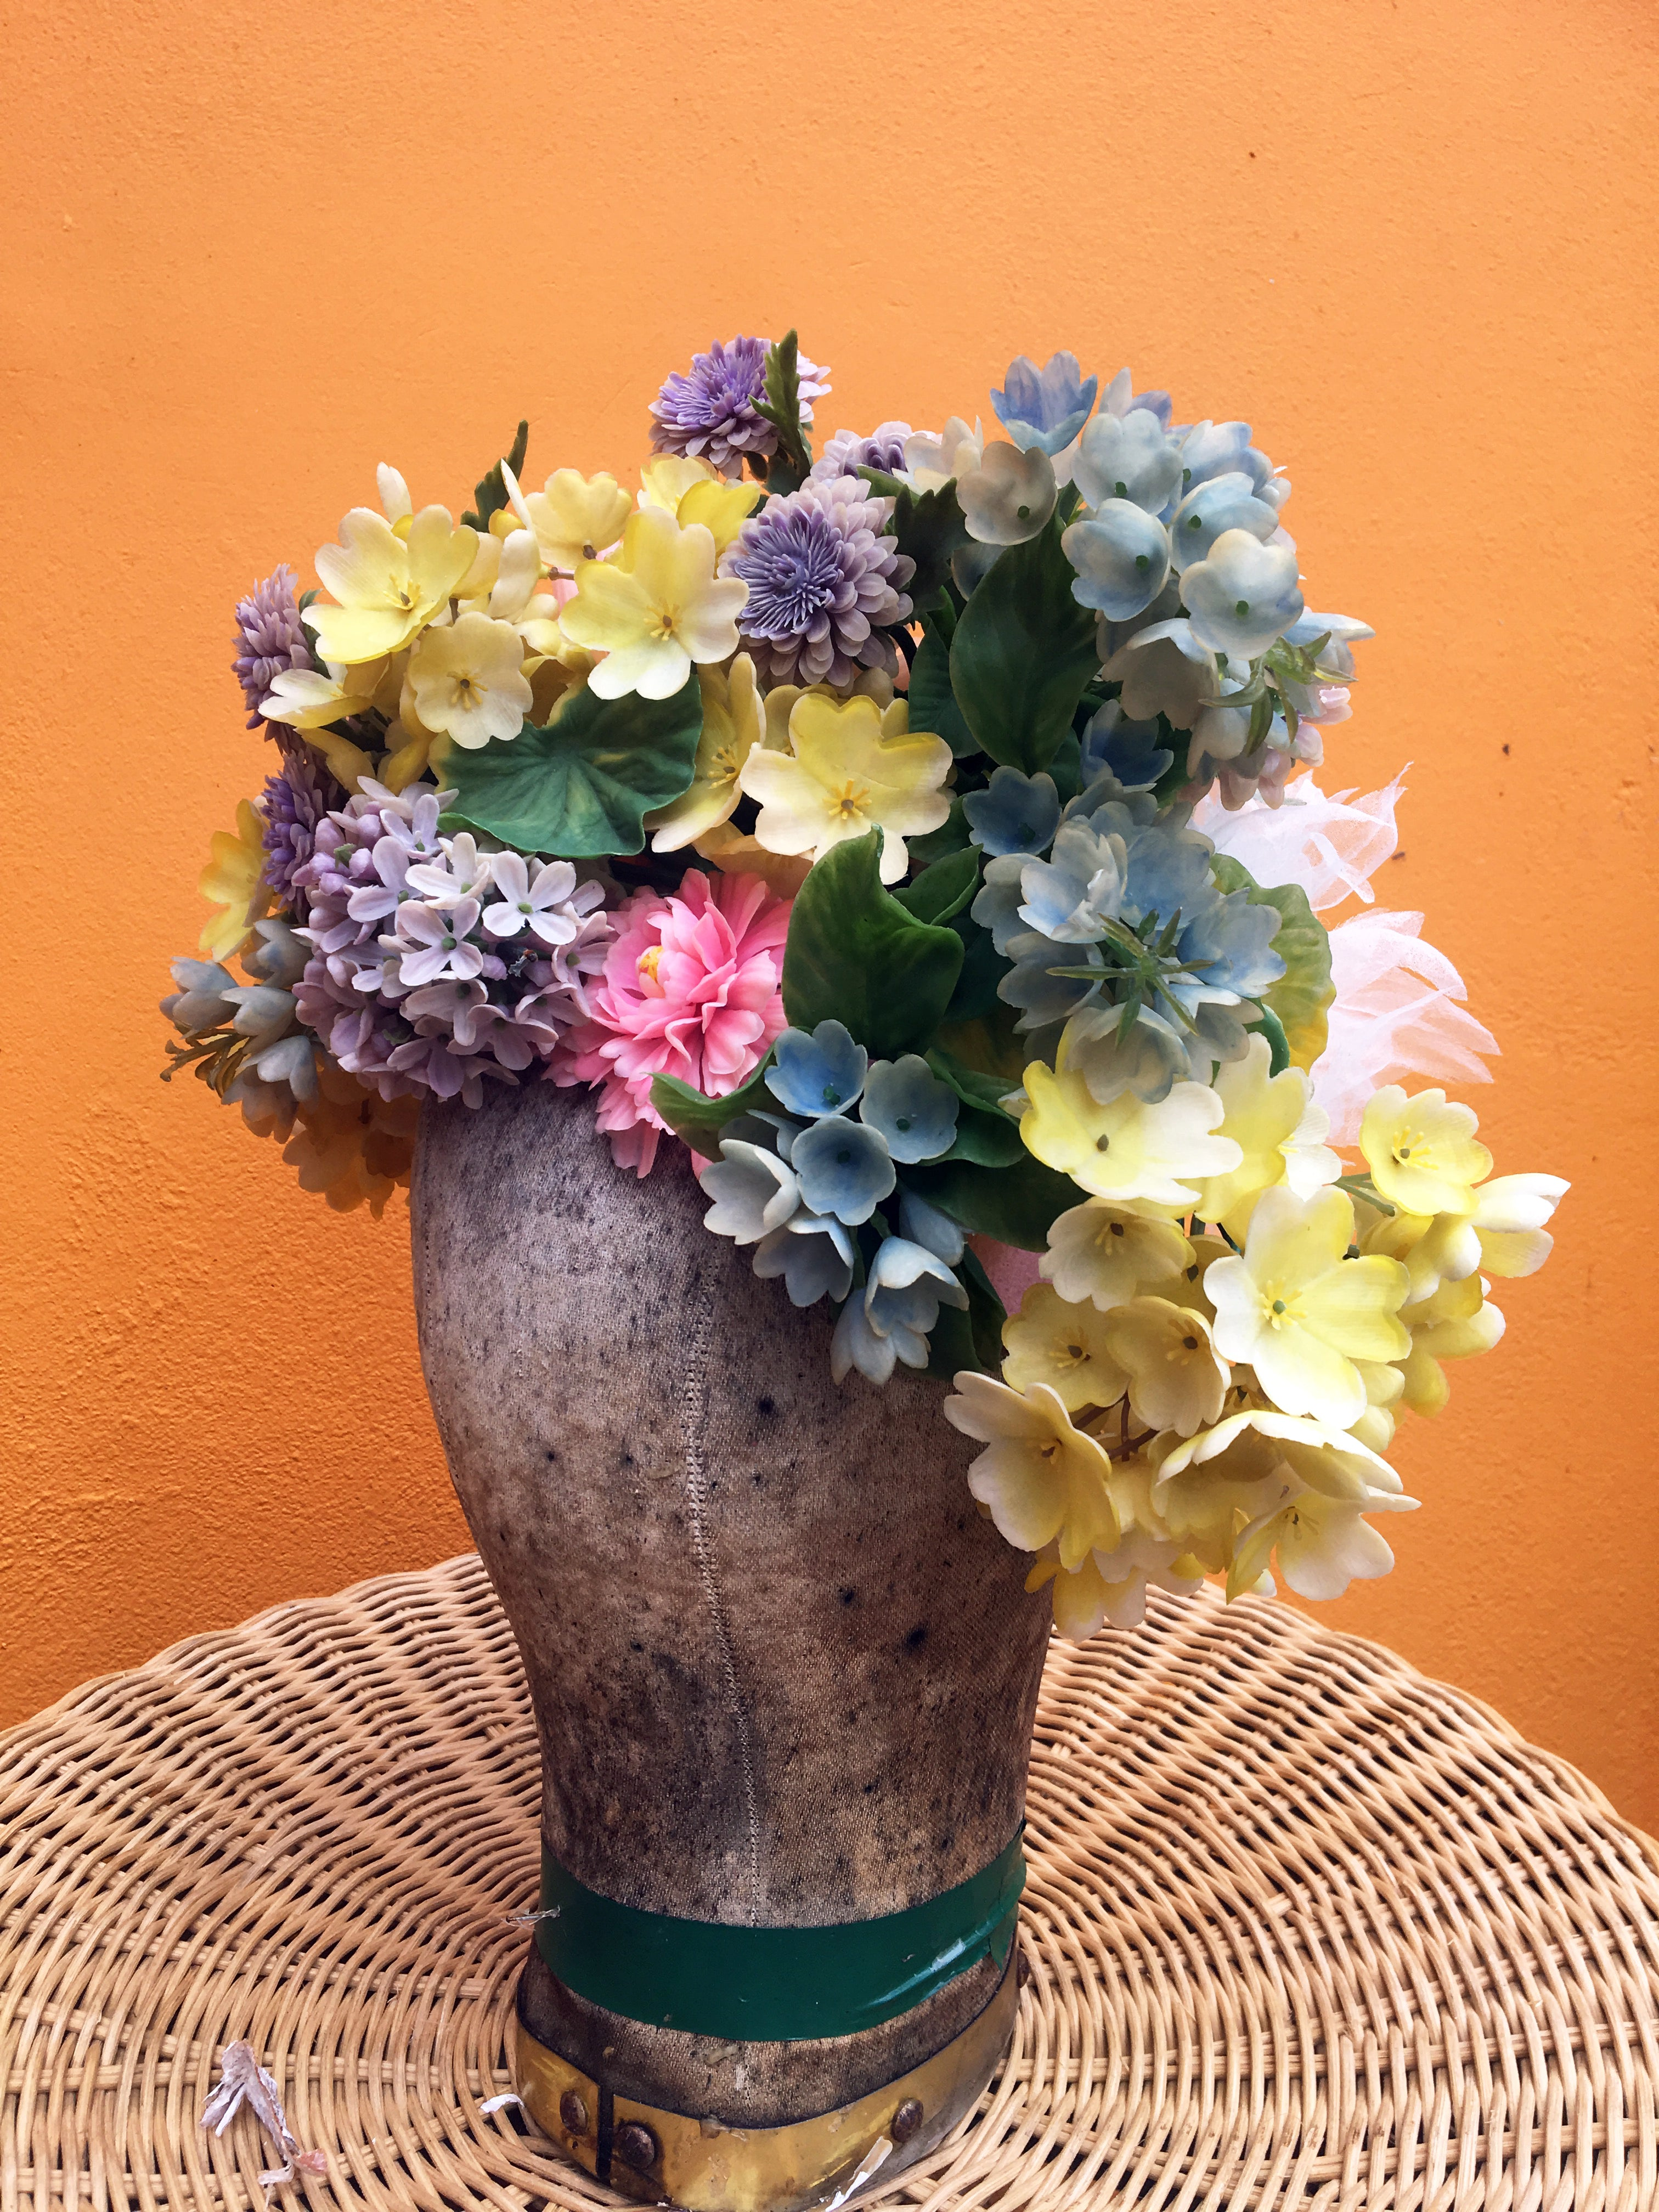 Vintage flowers in a floral Headdress in pastel shades